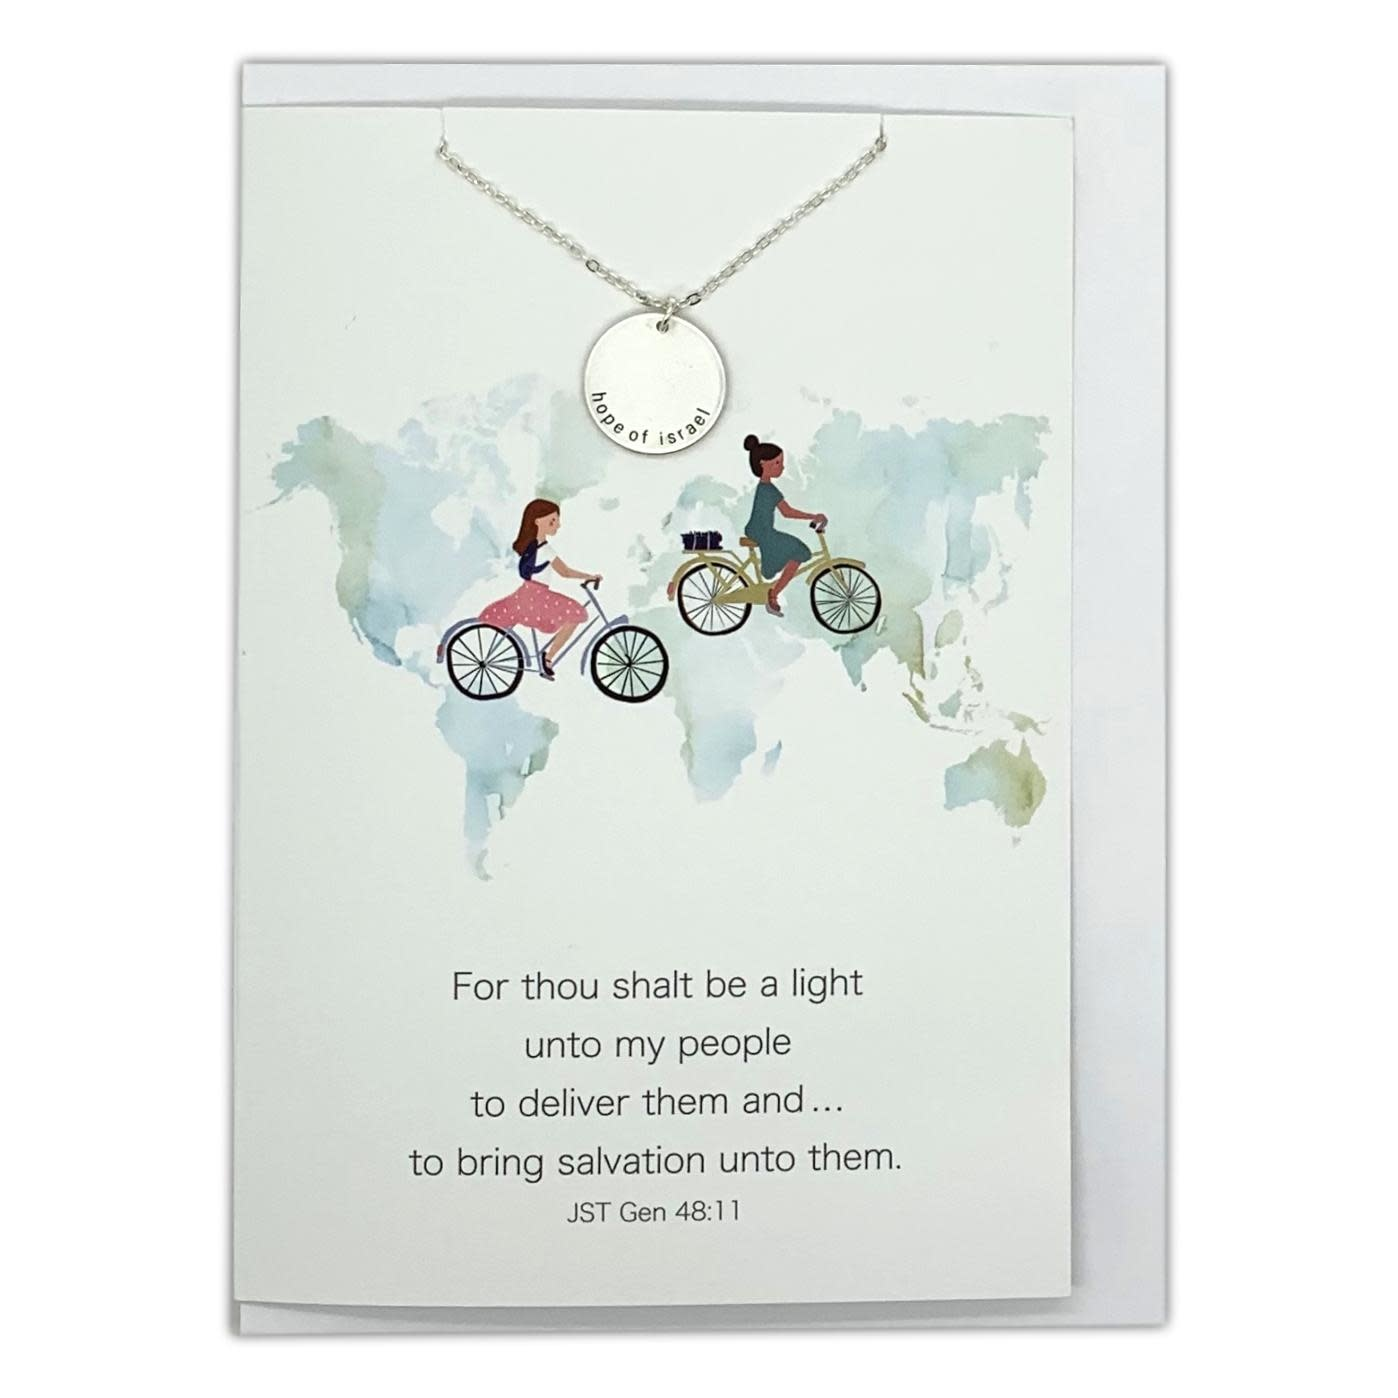 Hope of Israel Necklace, Sister Missionary Jewelry & Greeting Card (Gold)